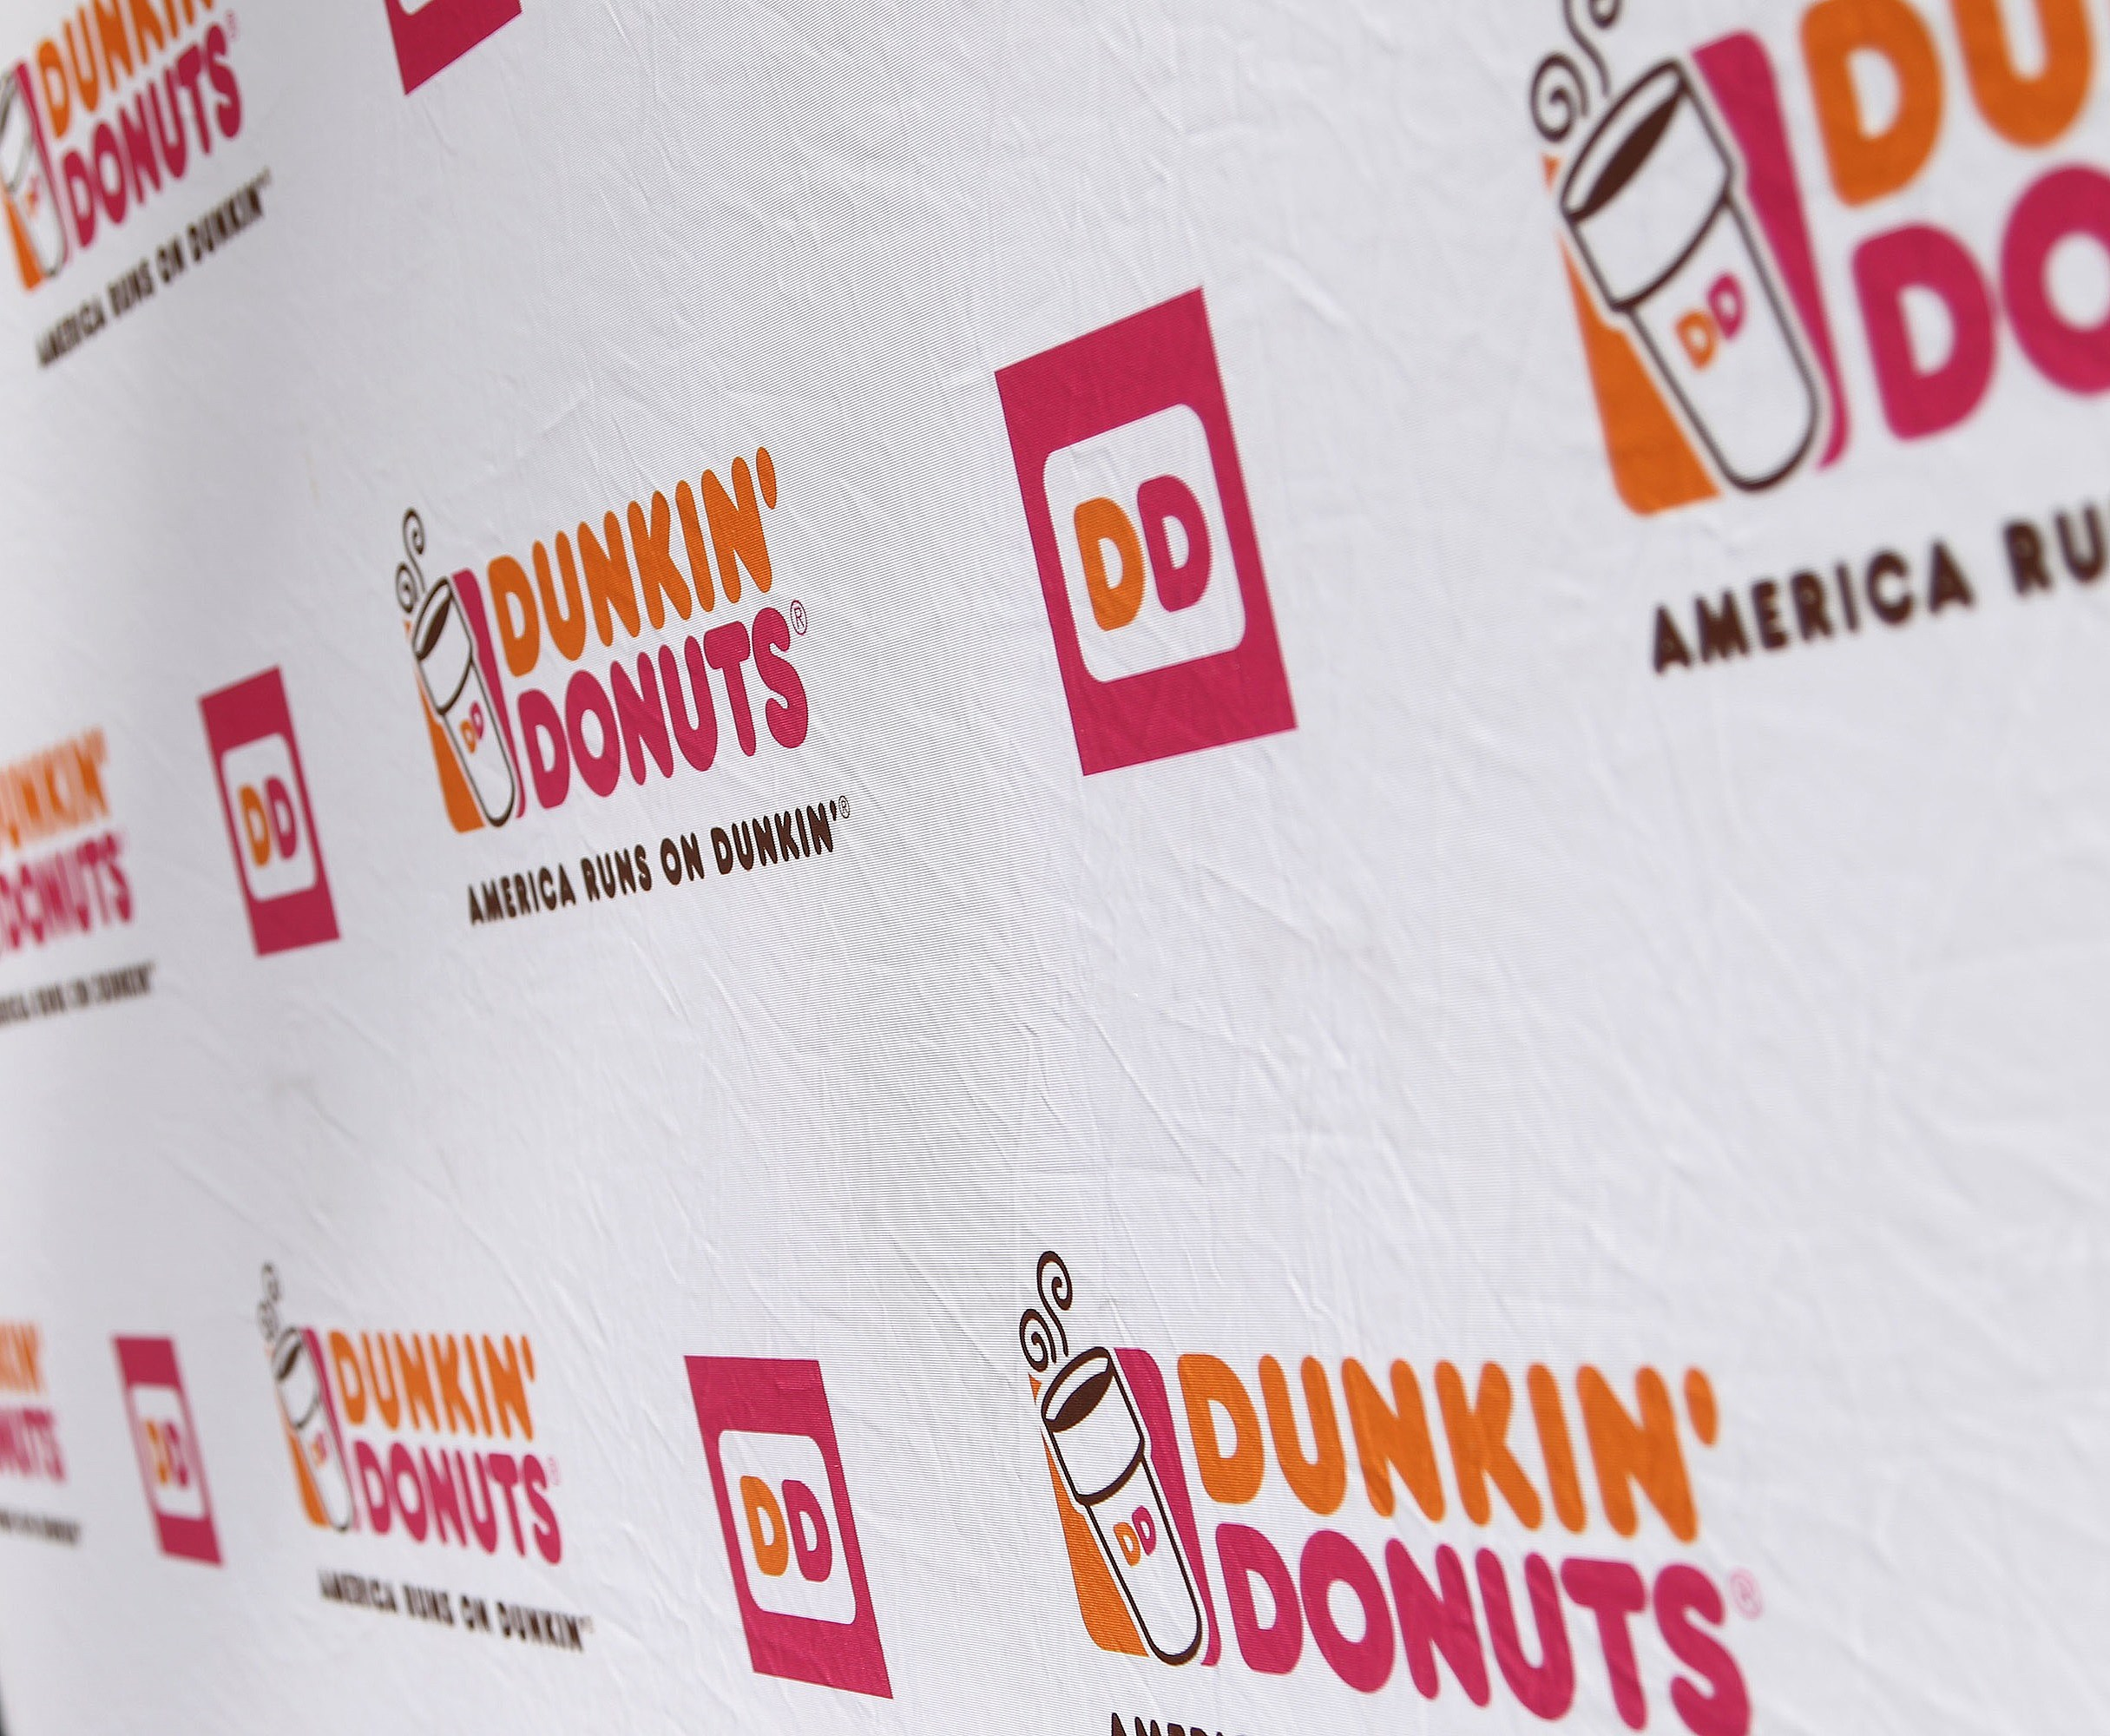 image regarding Dunkin Donuts Printable Application titled NJ Resident Allegedly Discovered Insects Inside Dunkin Donuts Sandwich